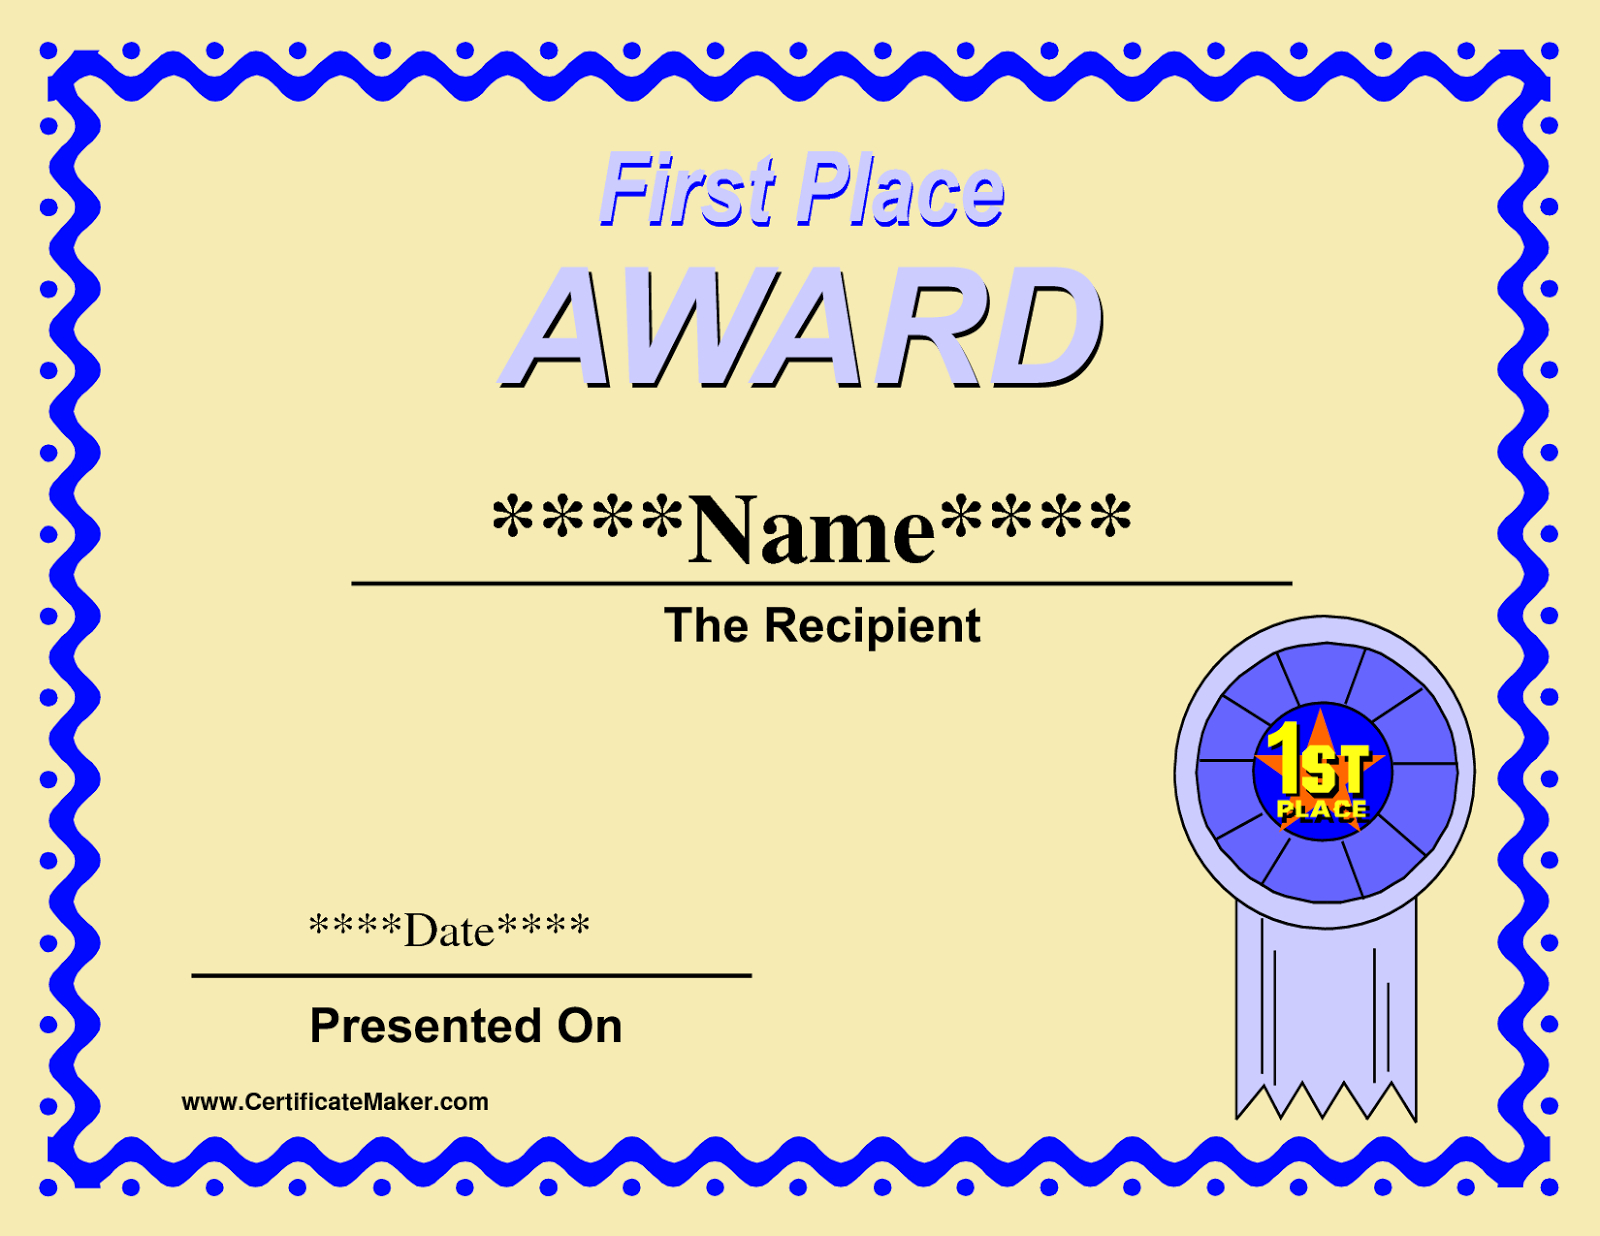 Printable Winner Certificate Templates  Winner Certificate Pertaining To First Place Award Certificate Template